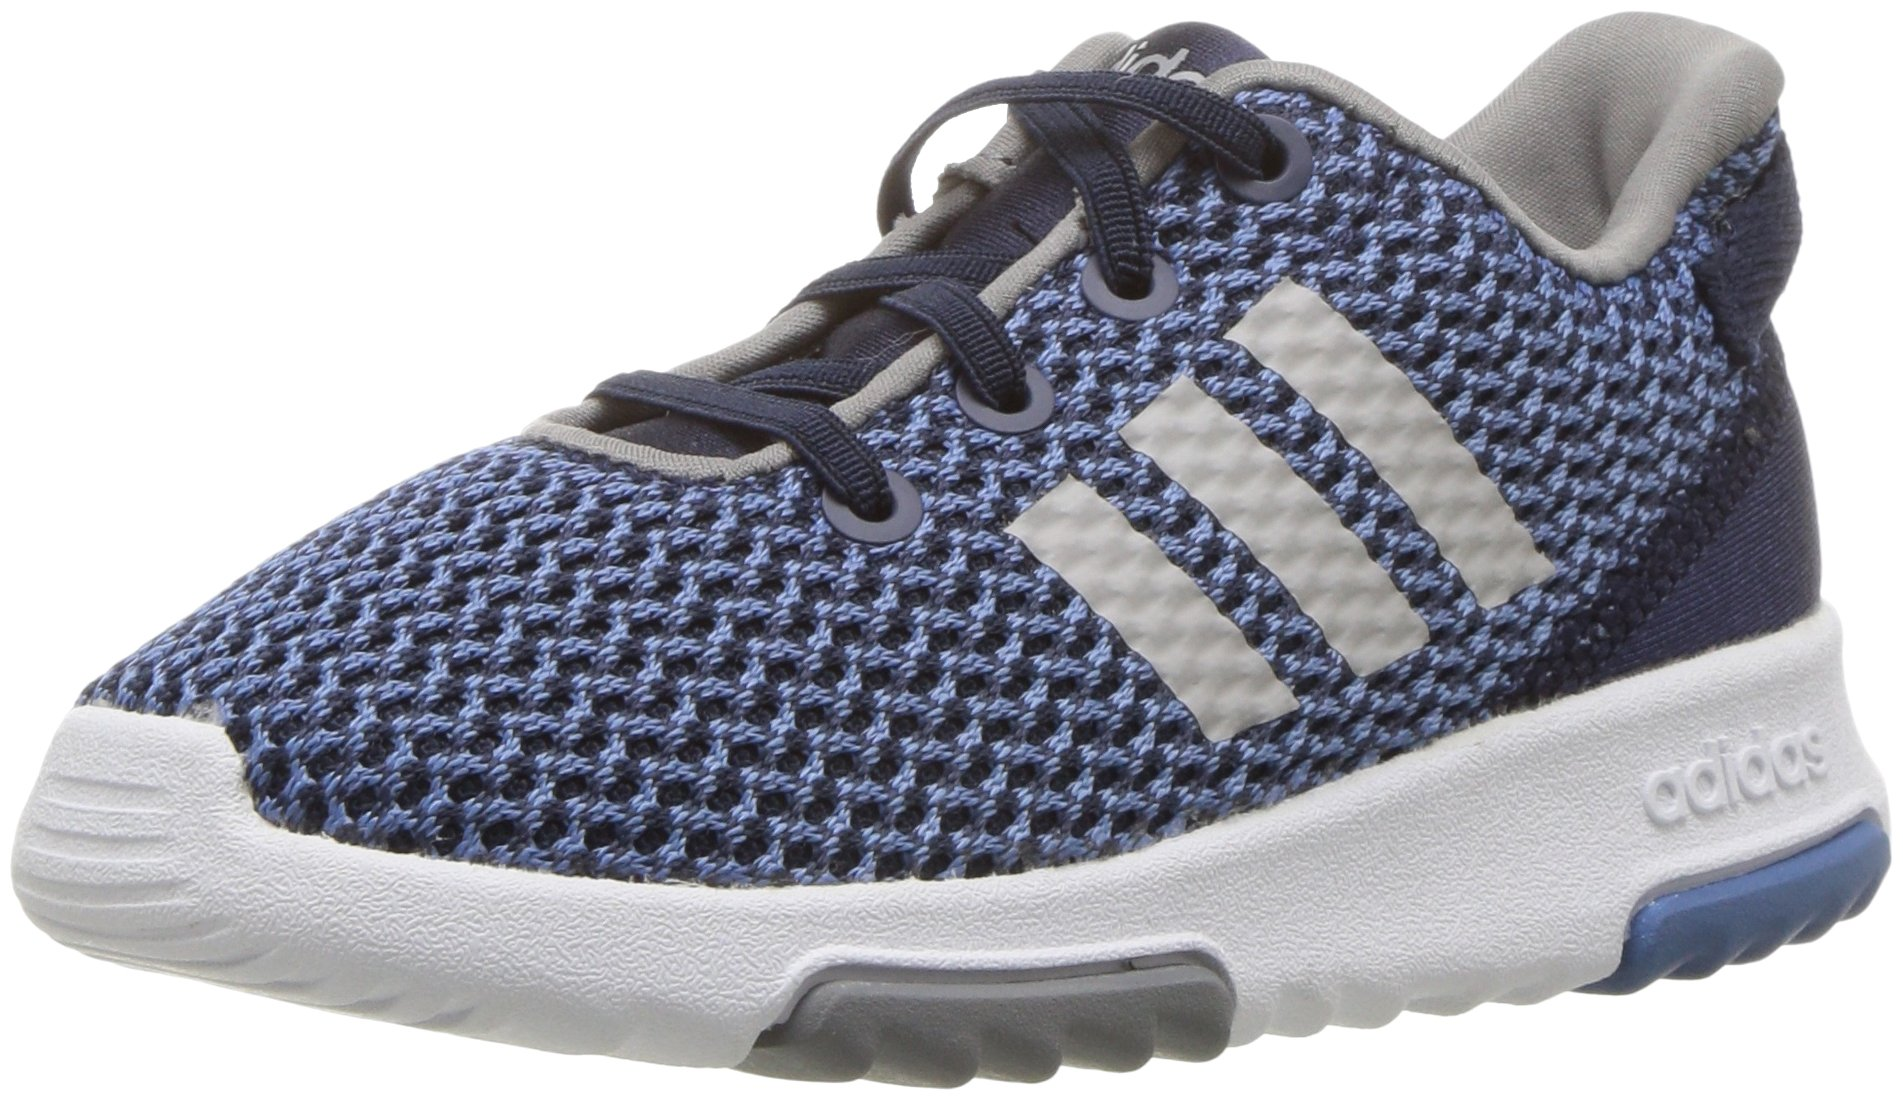 adidas Kids CF Racer TR Running Shoe, Collegiate Navy/Collegiate Navy/Grey, 3K M US Toddler